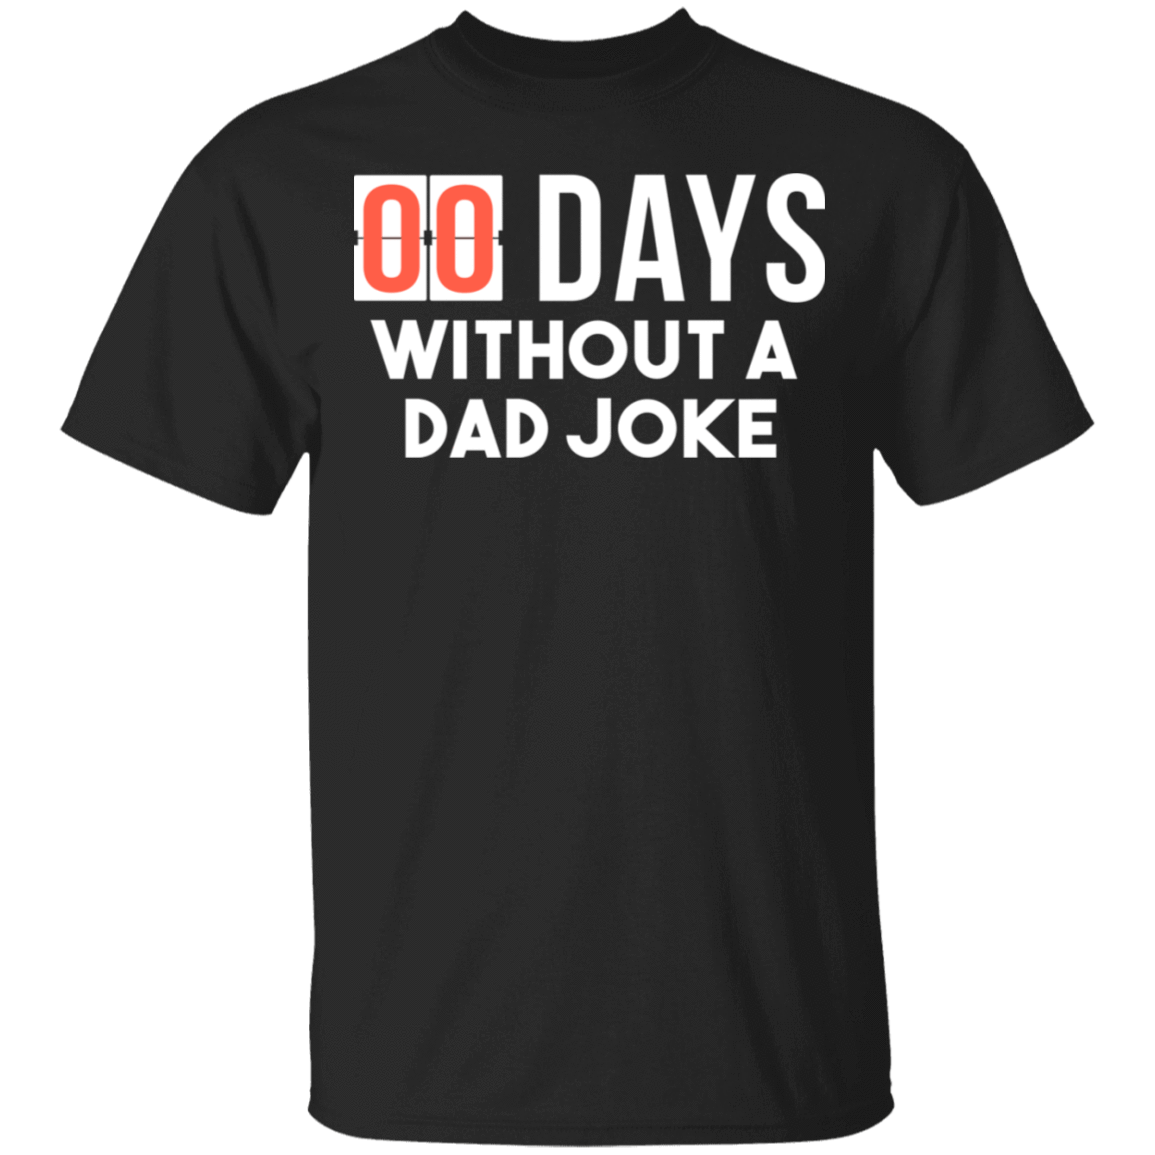 00 Days Without A Dad Joke T-Shirts, Hoodies, Tank 22-113-79929314-252 - Tee Ript